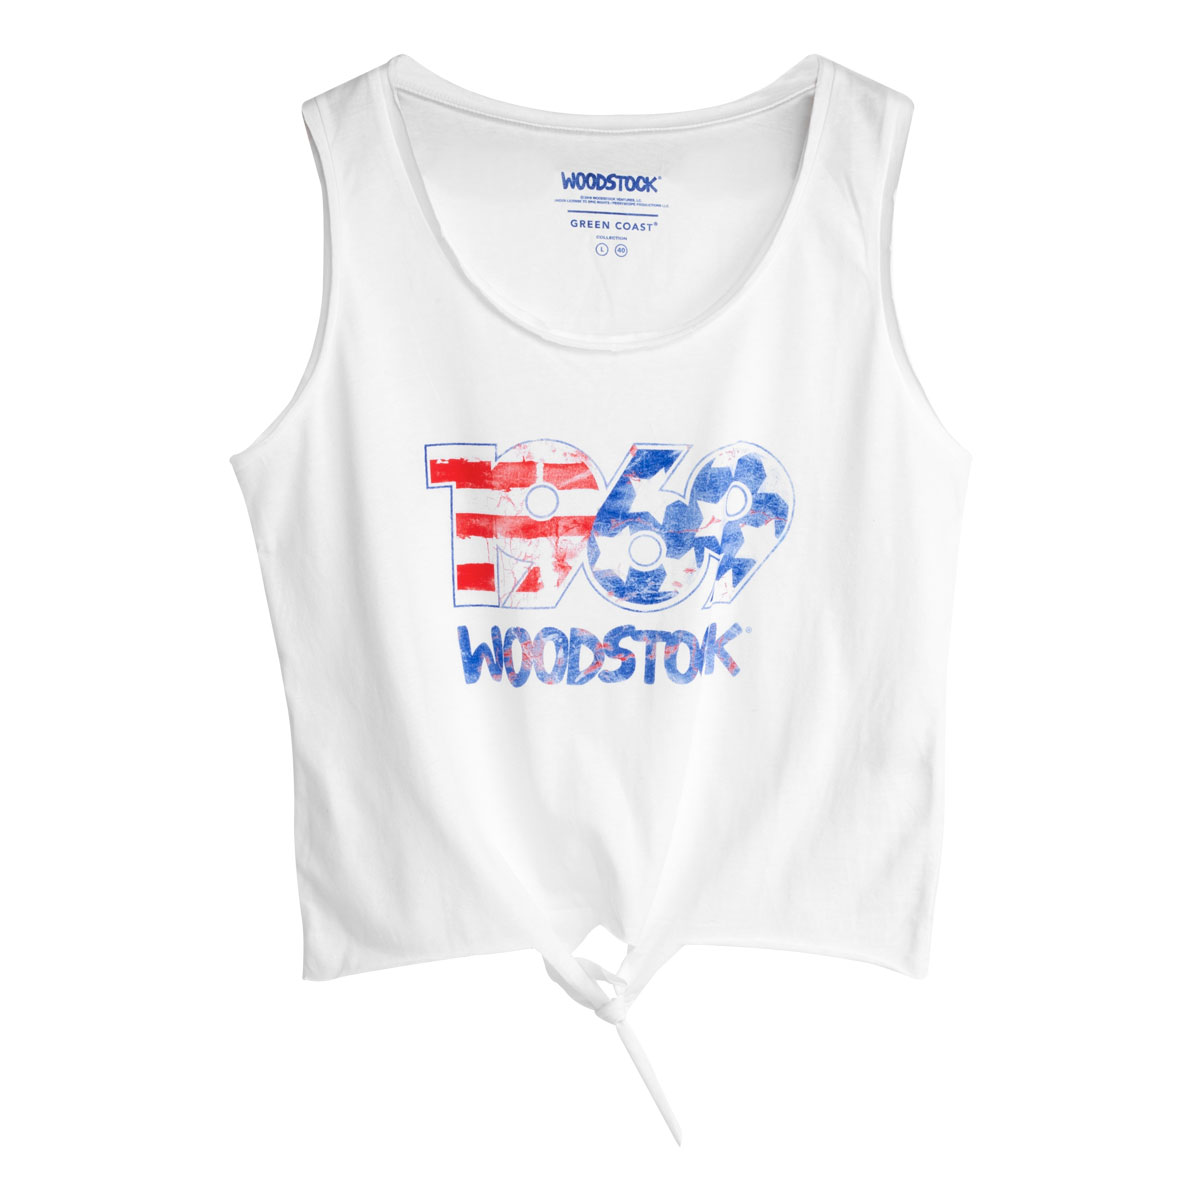 Woodstock 1969 Youth White Tank Top